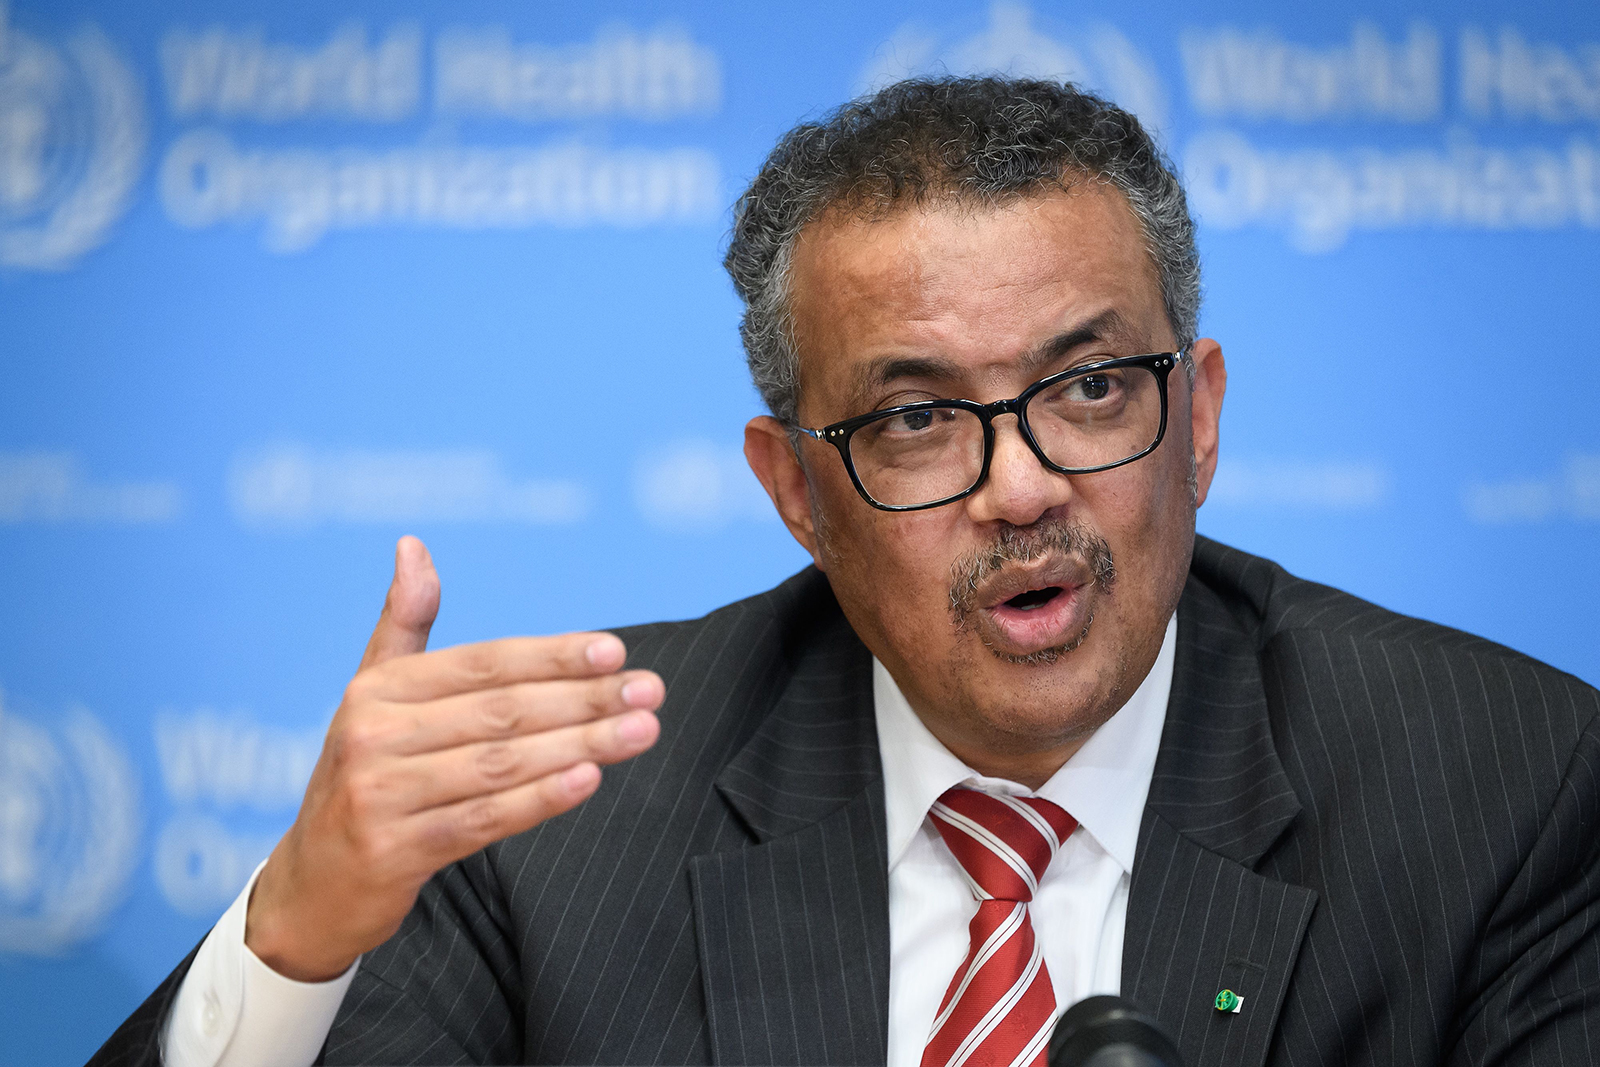 World Health Organization (WHO) Director-General Tedros Adhanom Ghebreyesus talking during a press briefing on Covid-19 at the WHO headquarters in Geneva, Switzerland, on March 11.